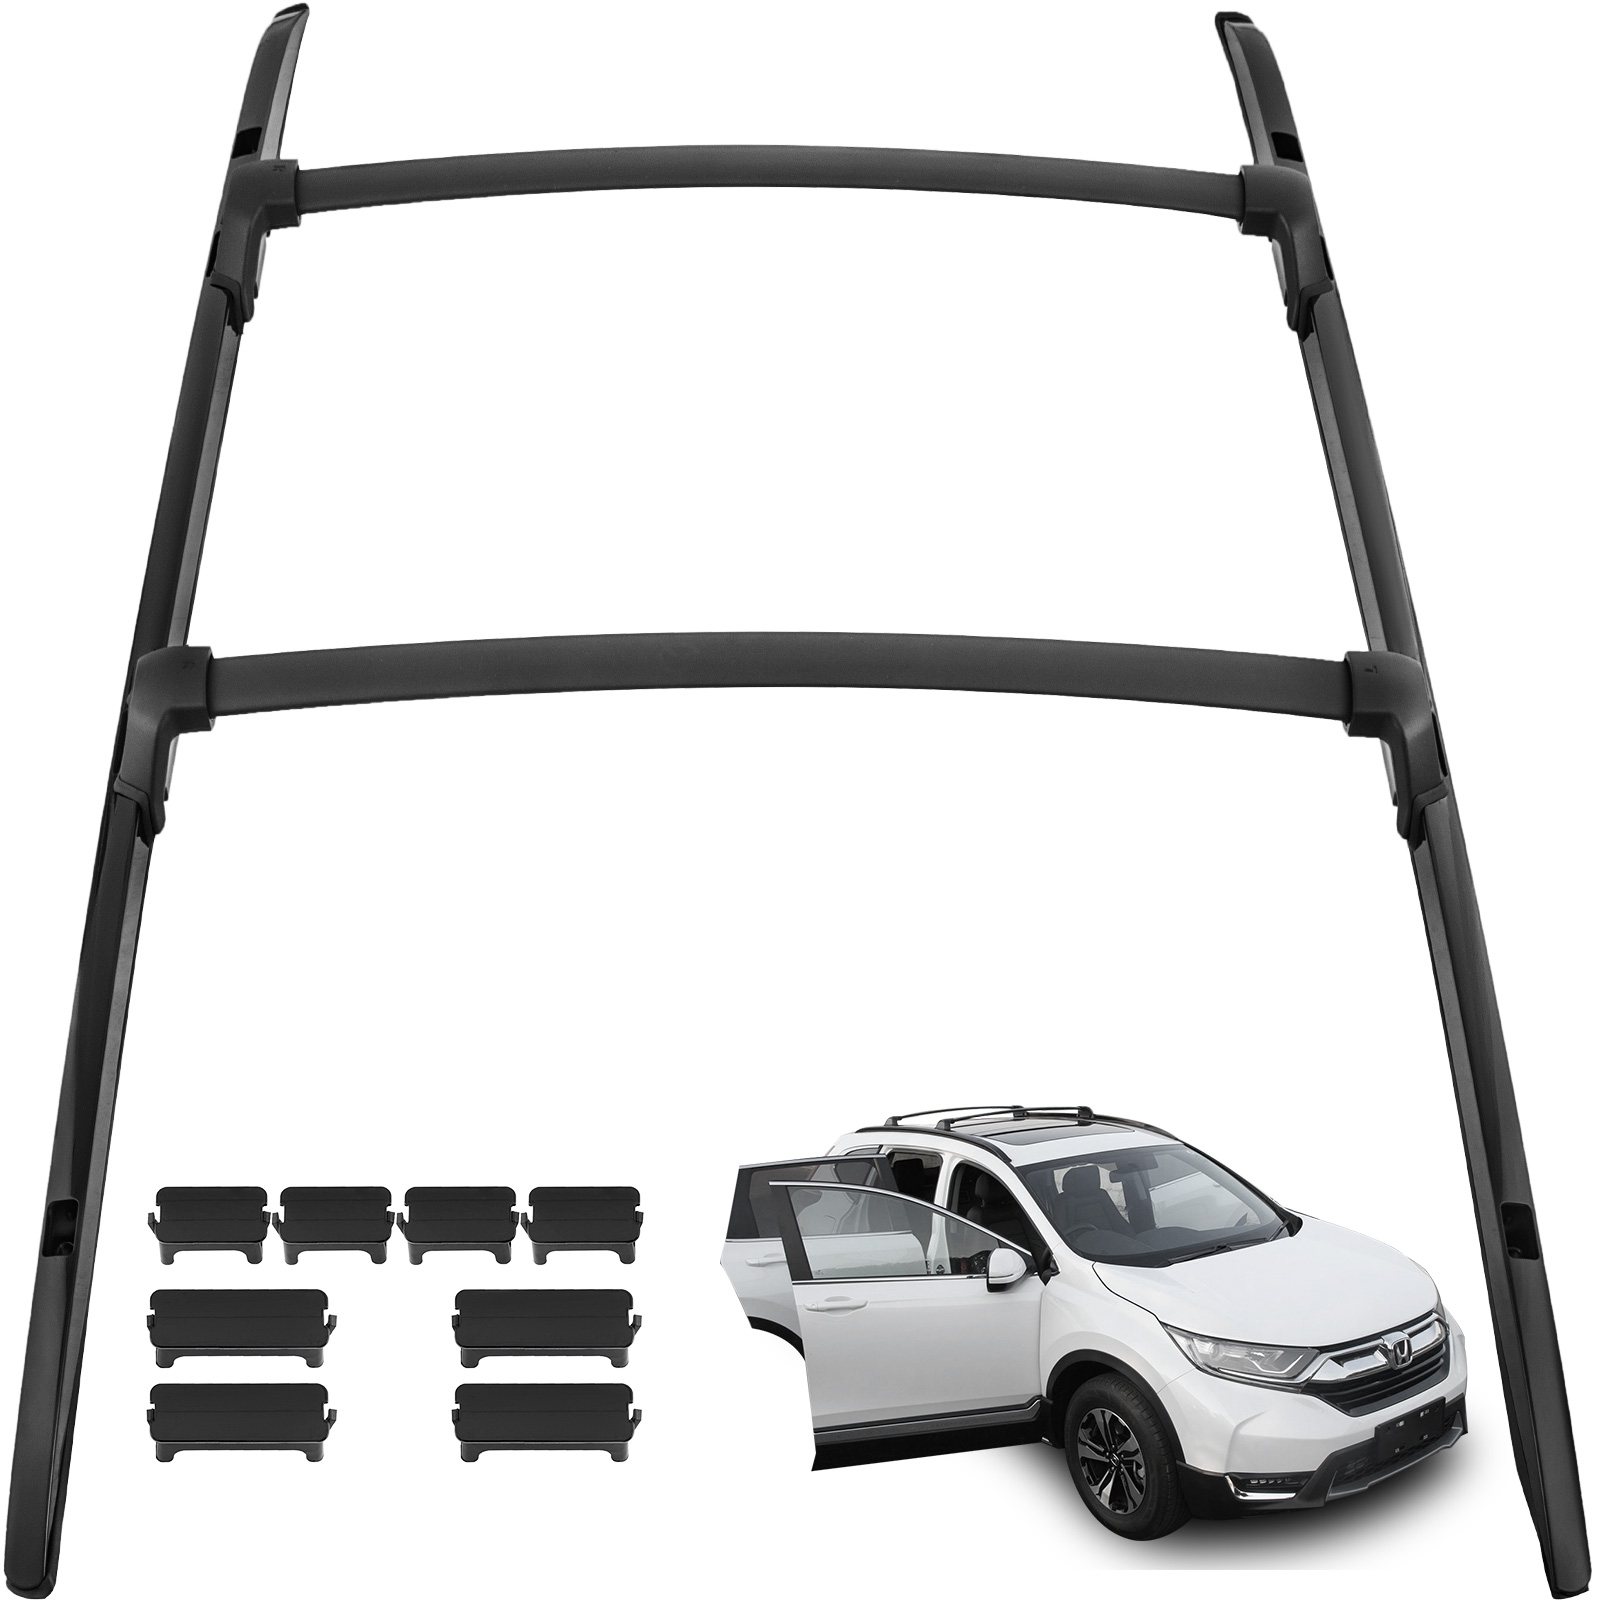 Fit For Acura RDX 2012-2017 Roof Rack Cargo Side Rails